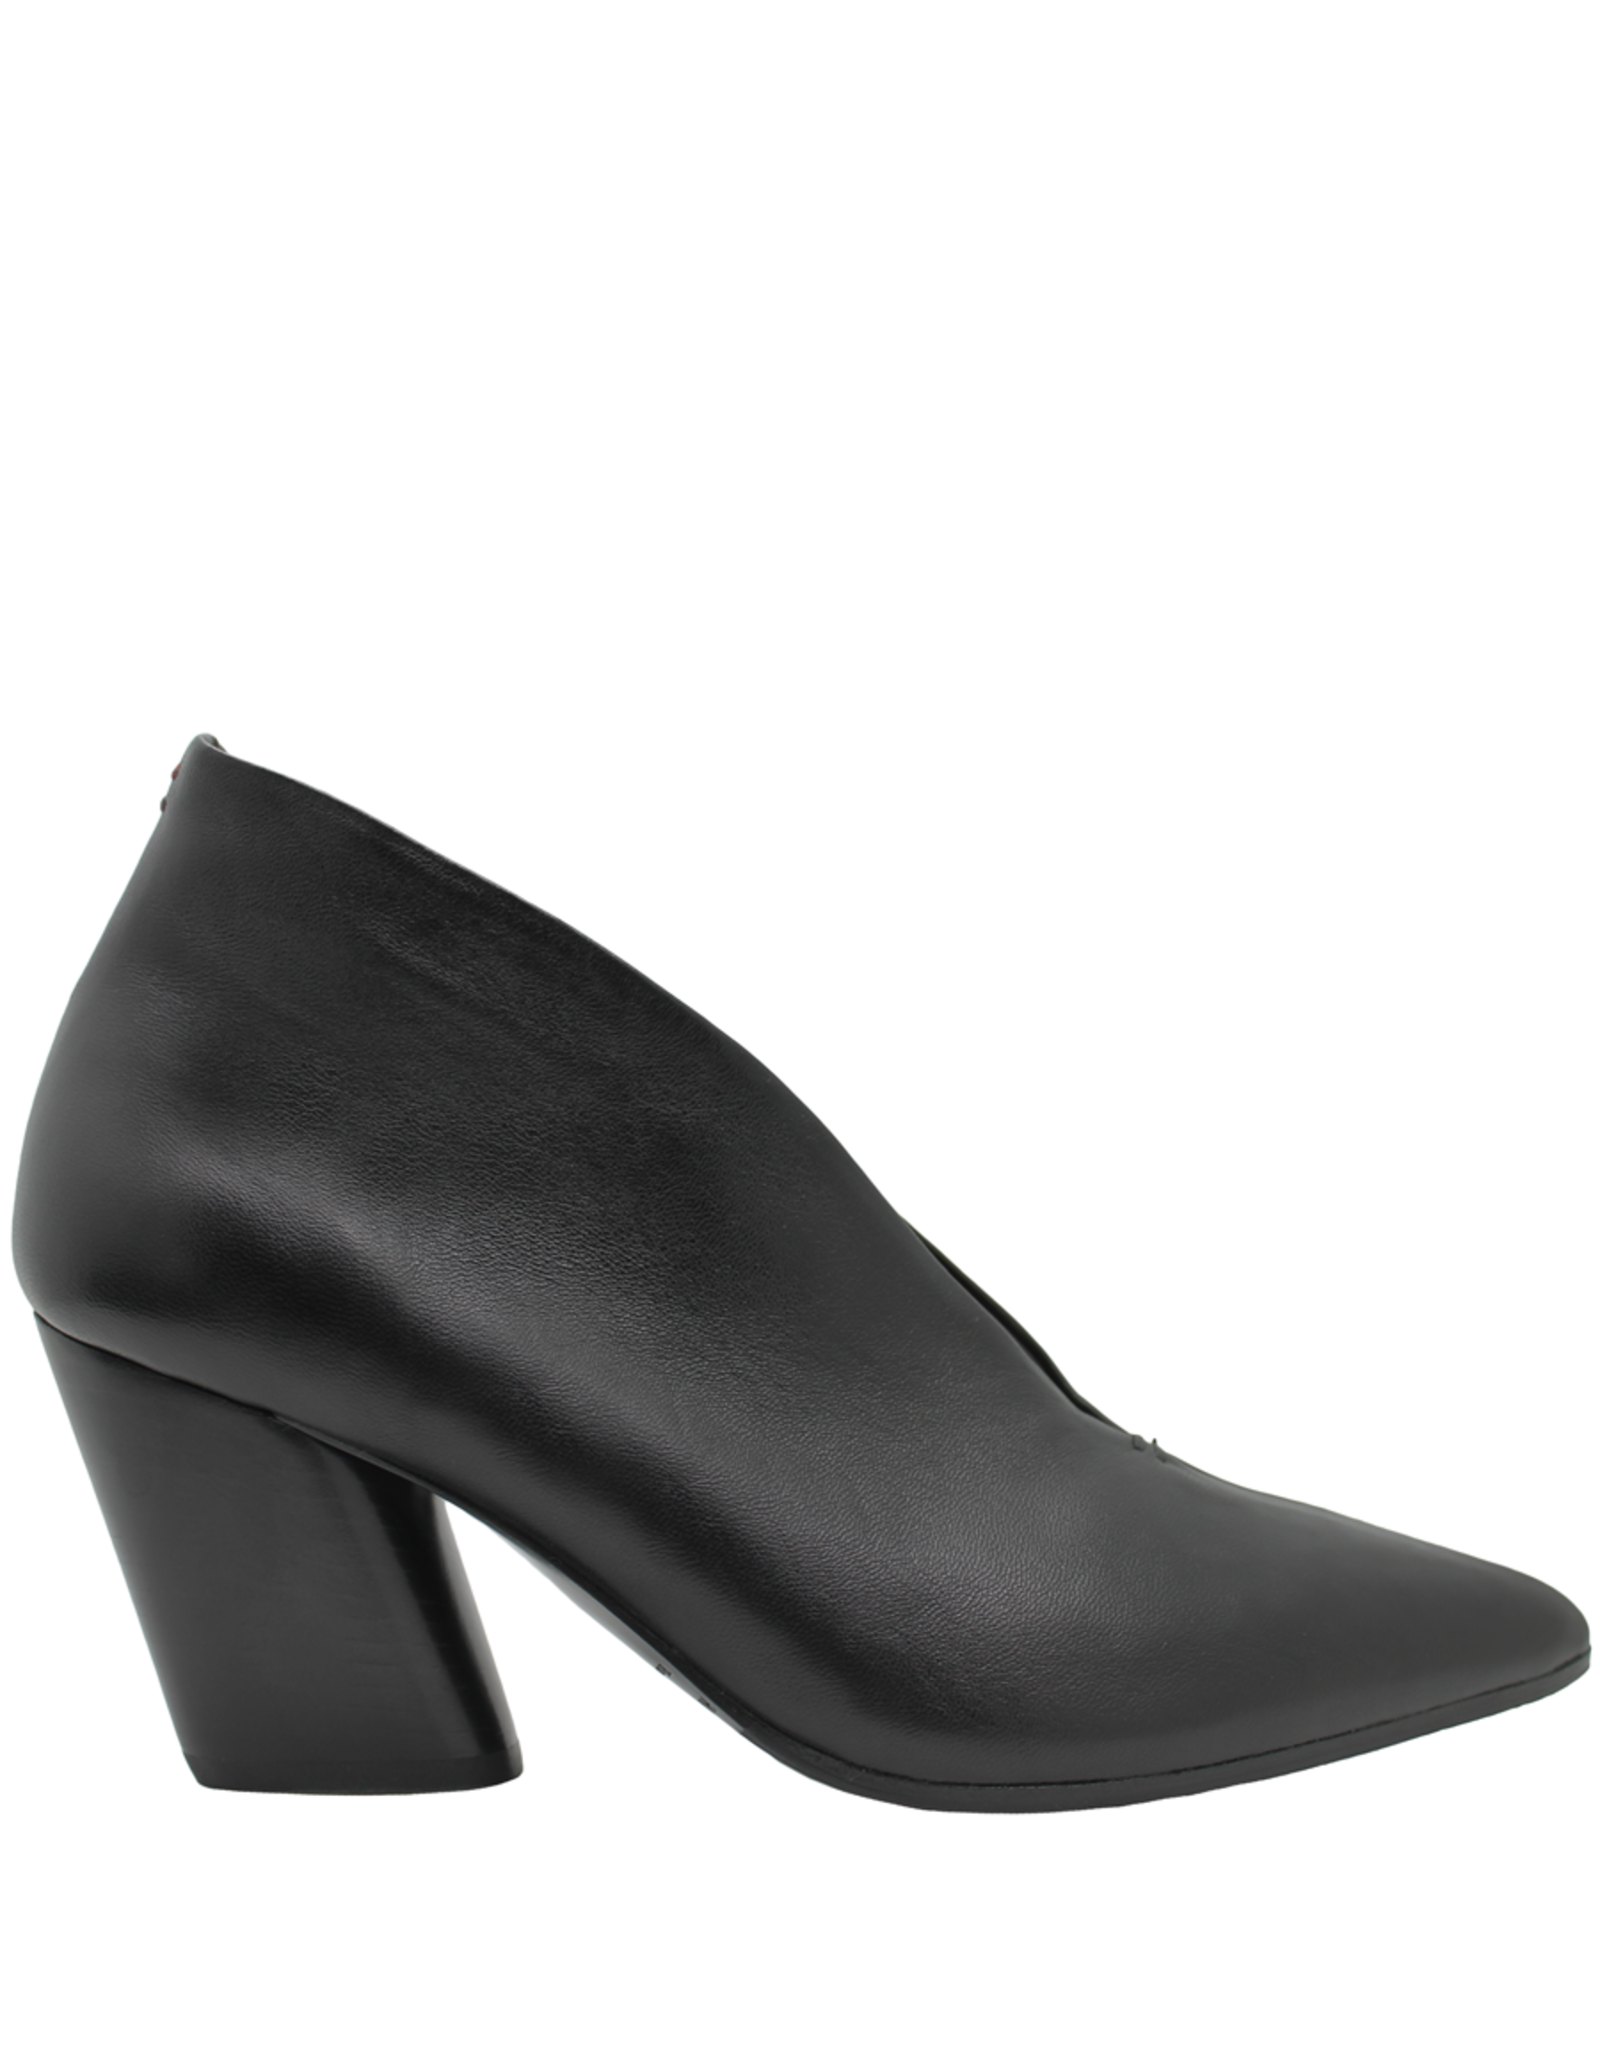 Halmanera Halmanera Black Medium Heel High Collar Pump 1990